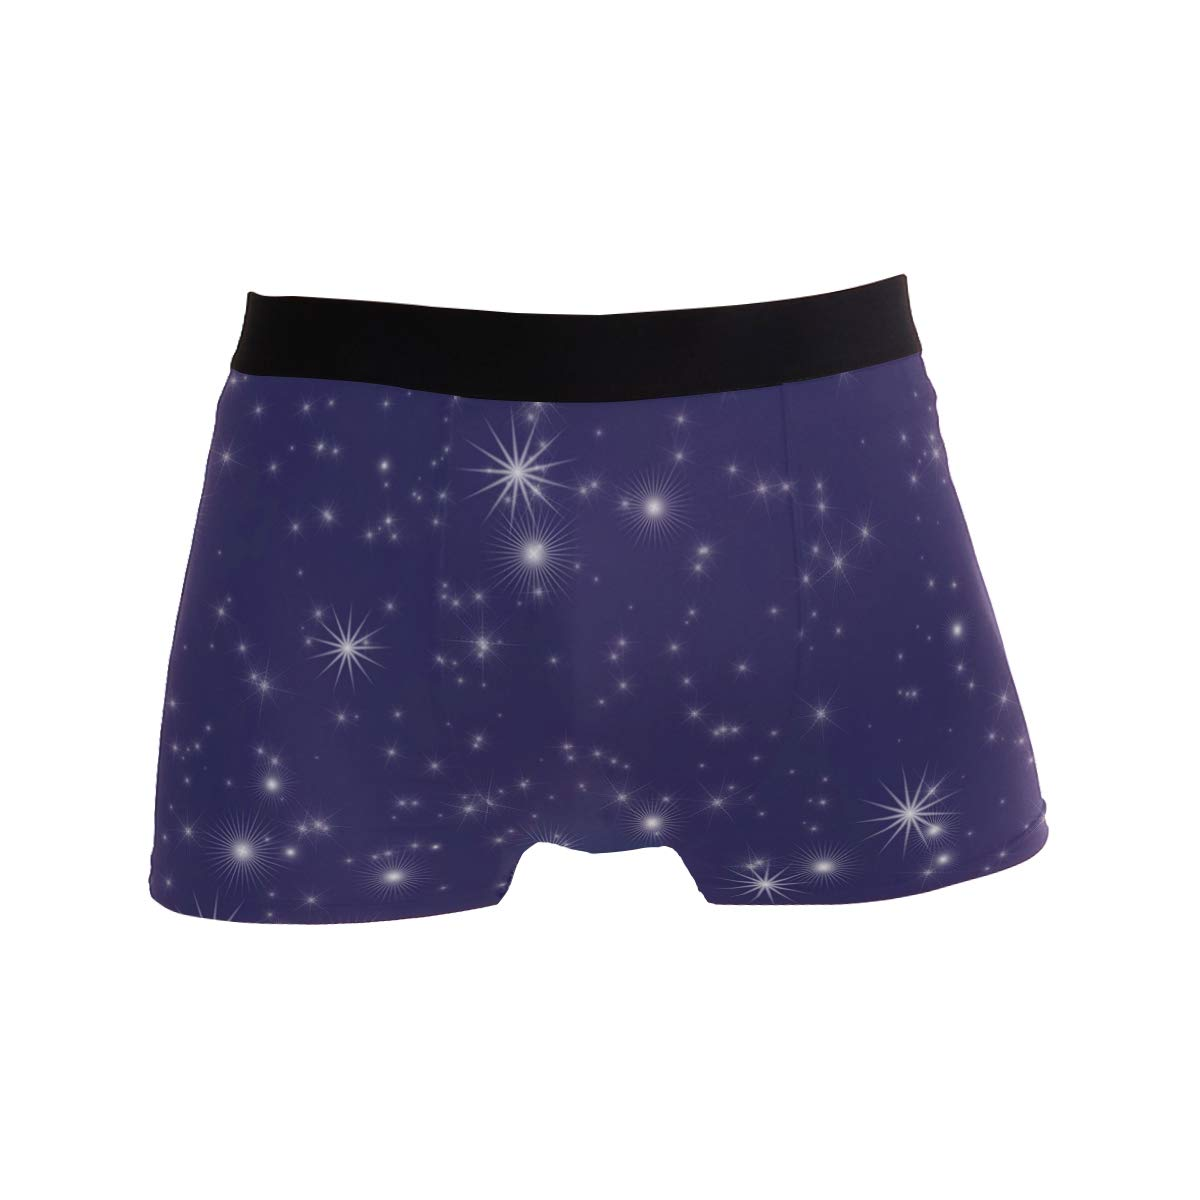 LEFEI Beautiful Stars Men/'s Underwear Boxer Briefs Polyester Spandex Pouch,2-Pack,S